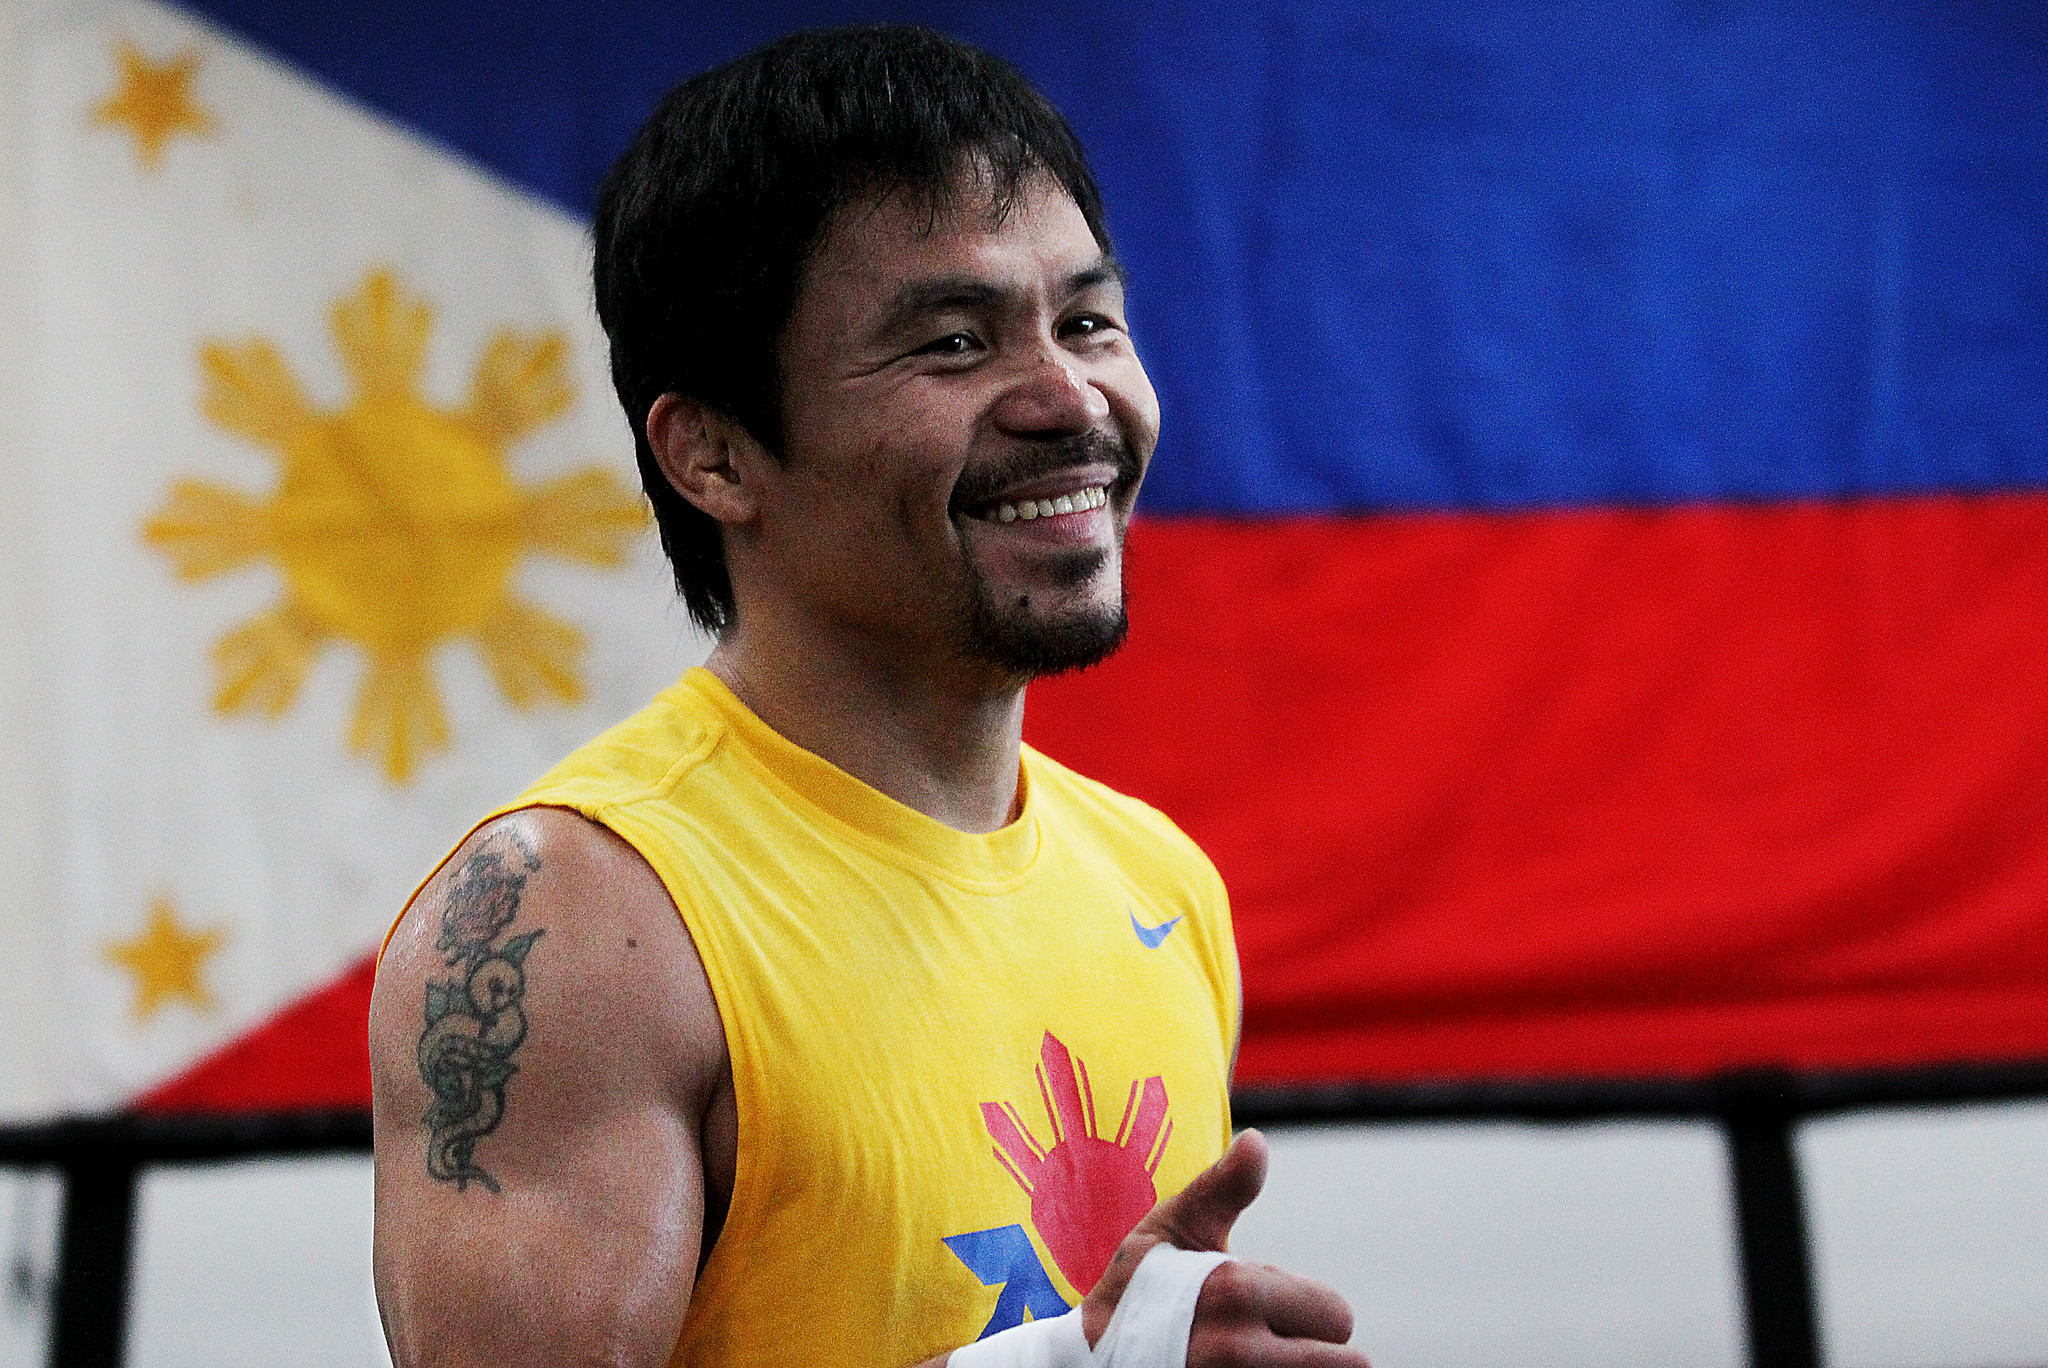 manny pacquiao On thursday, boxing great manny pacman pacquiao stood before a cheering  crowd and flashing cameras, his arm hoisted above his head.